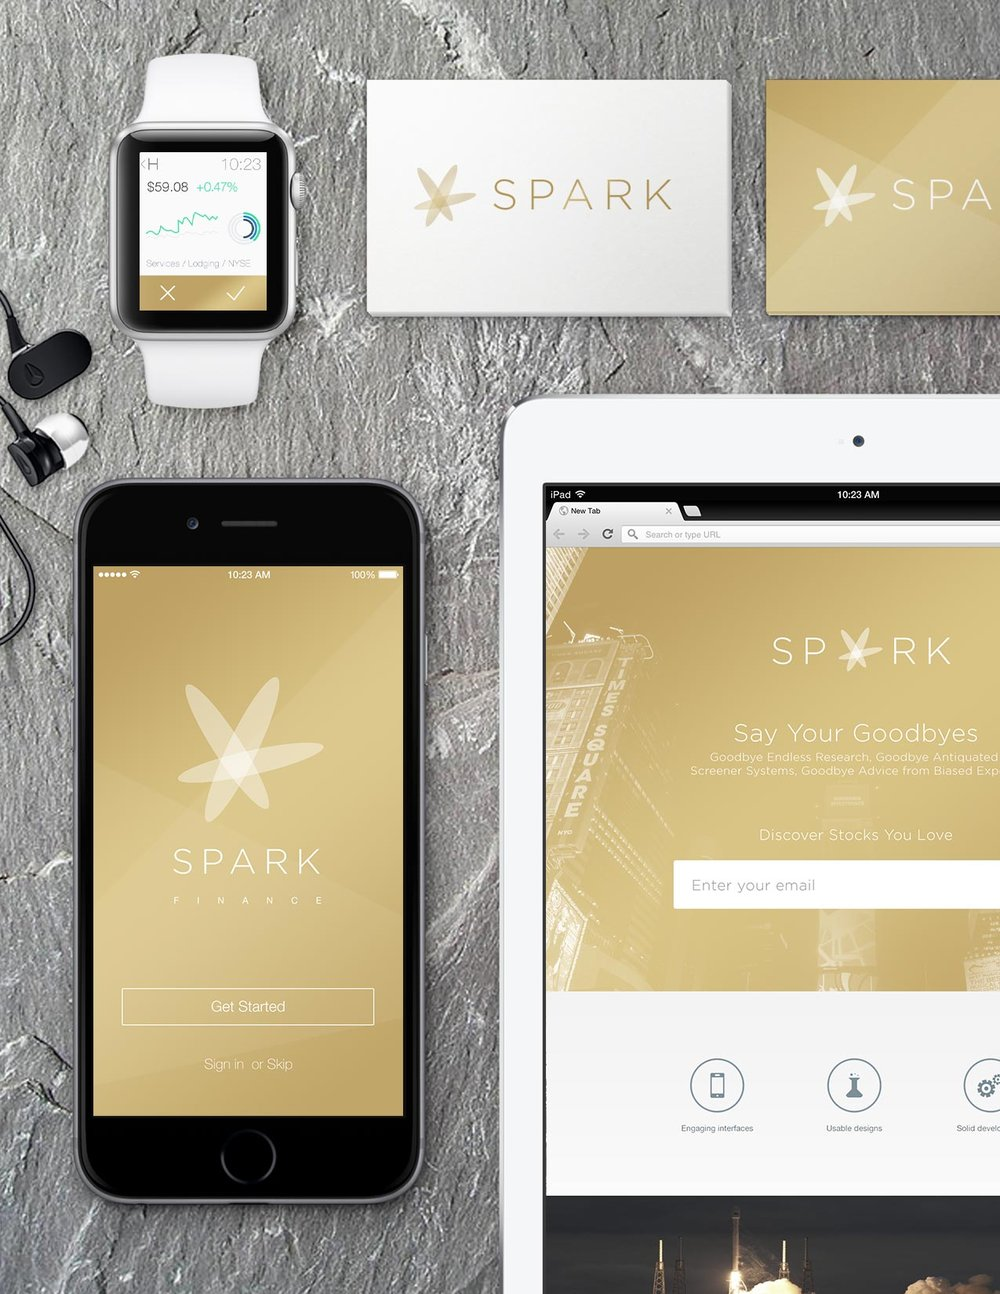 spark_fin_device_template_layout.jpg